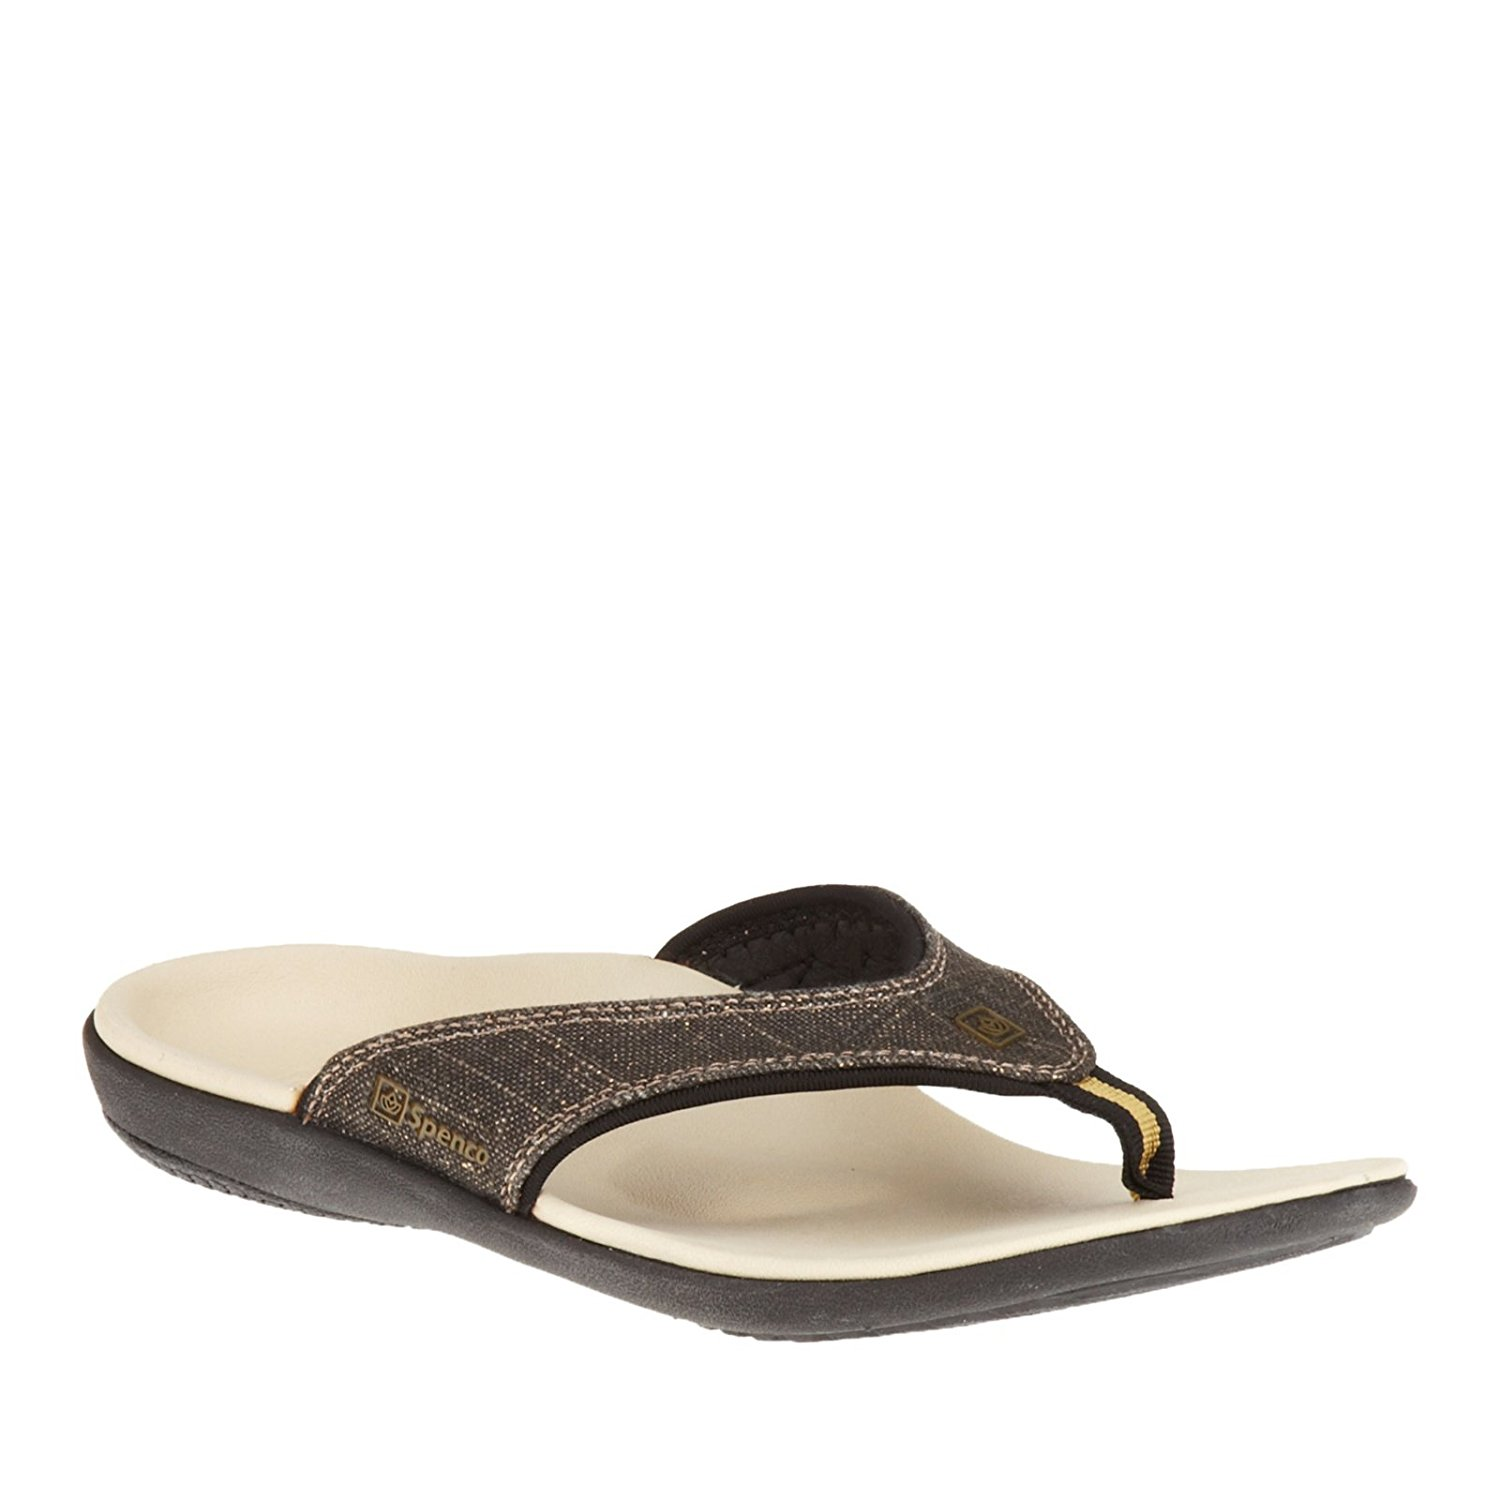 Spenco Yumi Black Gold Canvas Women's Total Support Thong Sandals, US 11